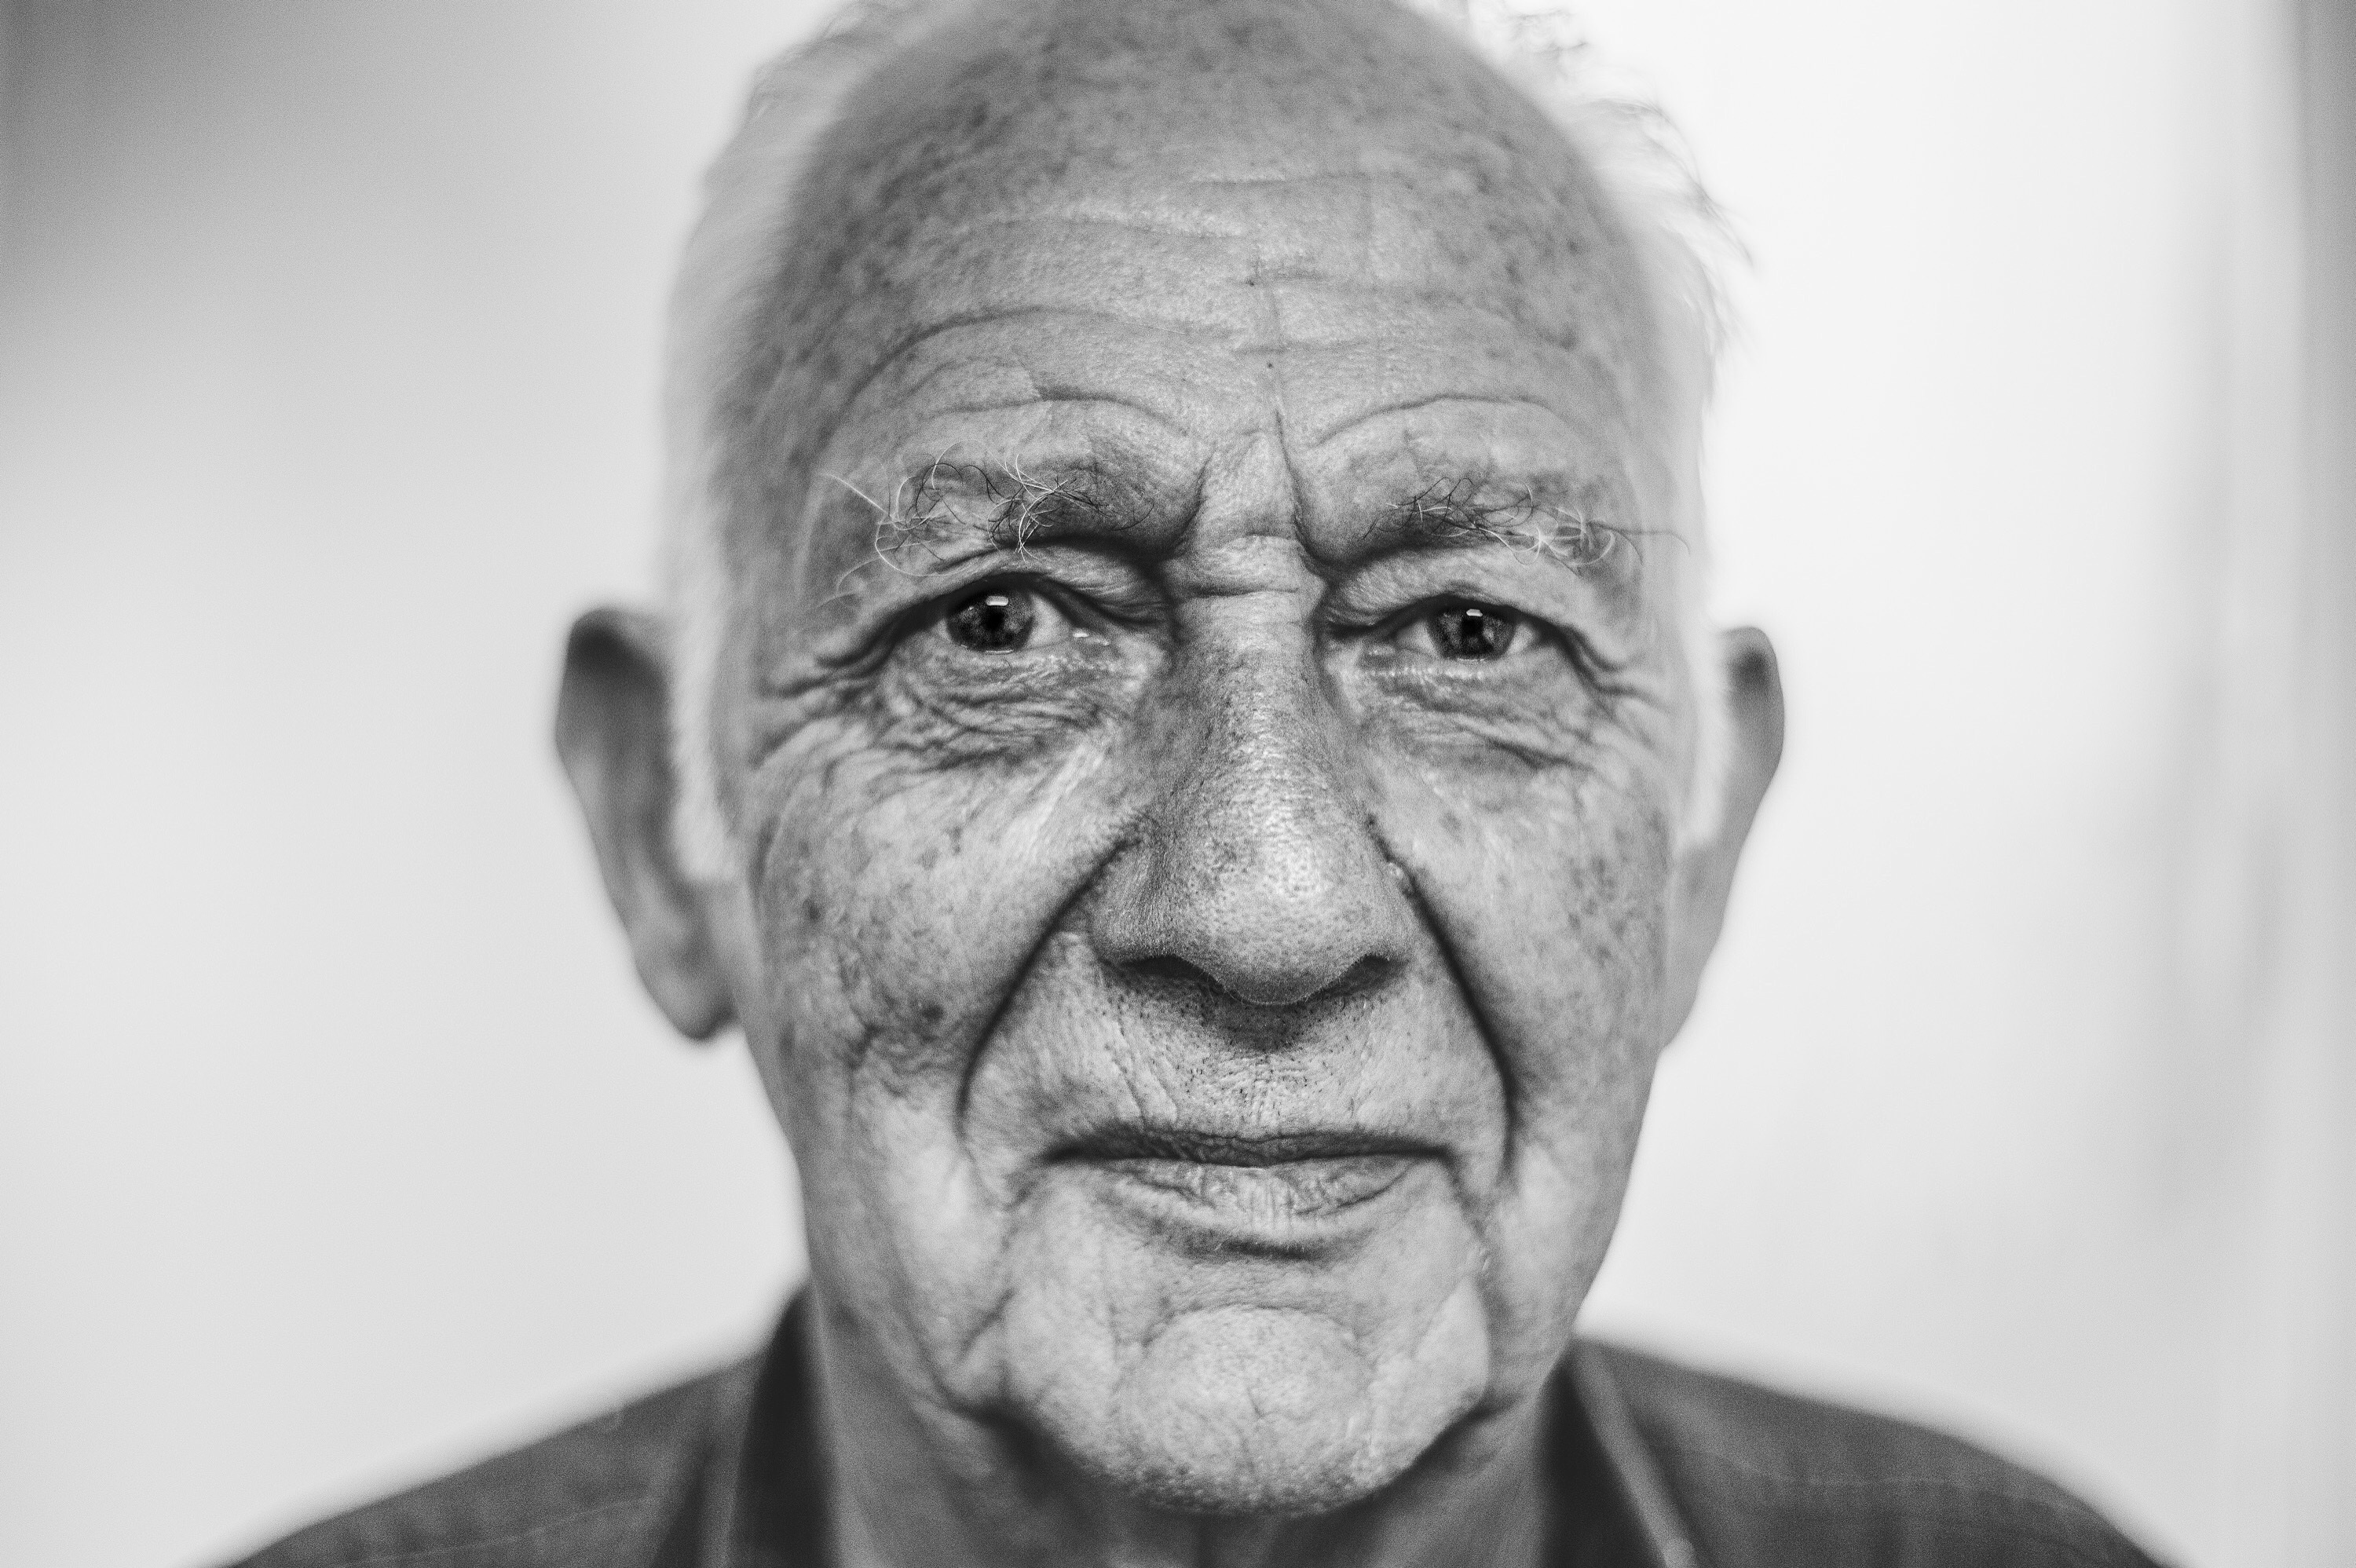 WHY ALZHEIMER'S SUFFERERS FORGET FACES